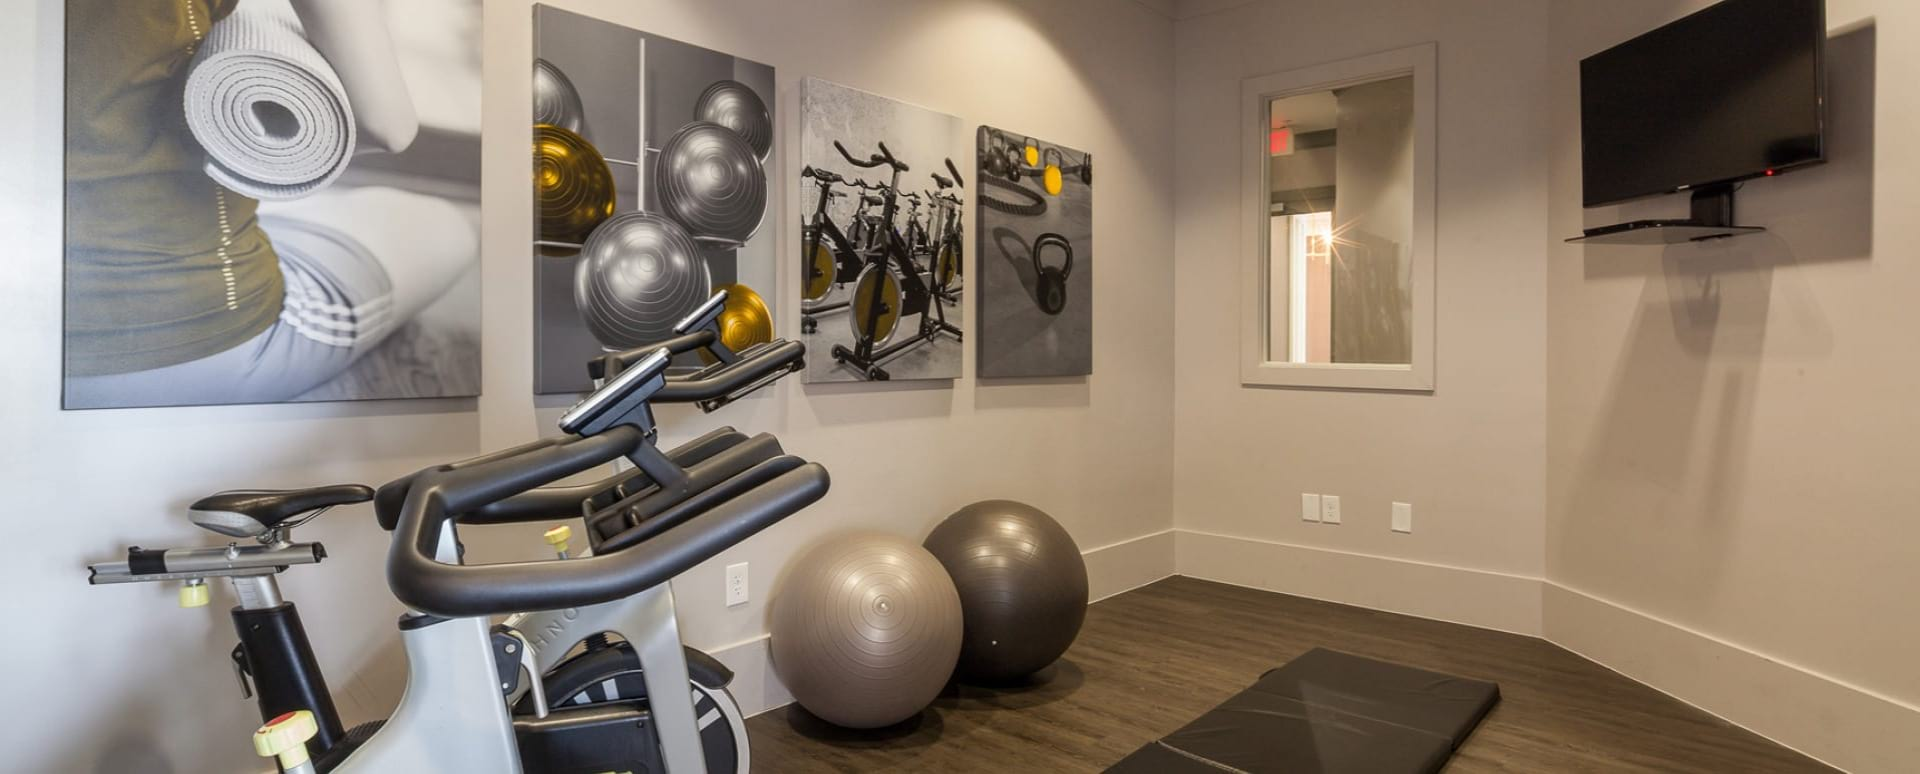 24/7 Fitness Center with Cardio Equipment